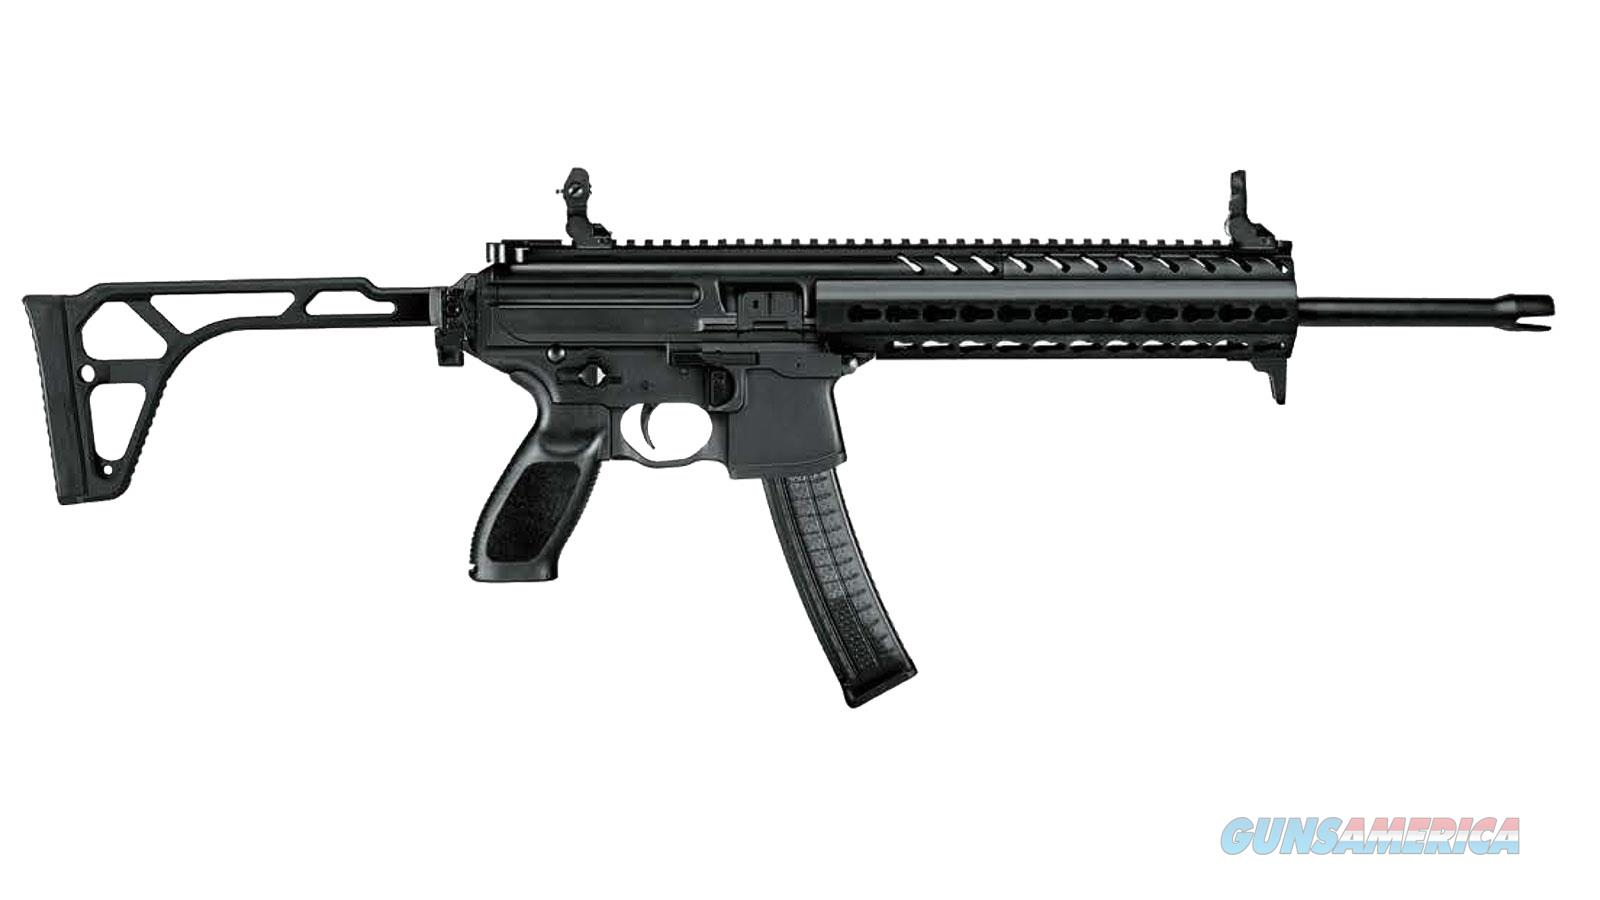 Sig Sauer Mpx C 9 9mm 16 30rd Mpx C 9 Km T For Sale